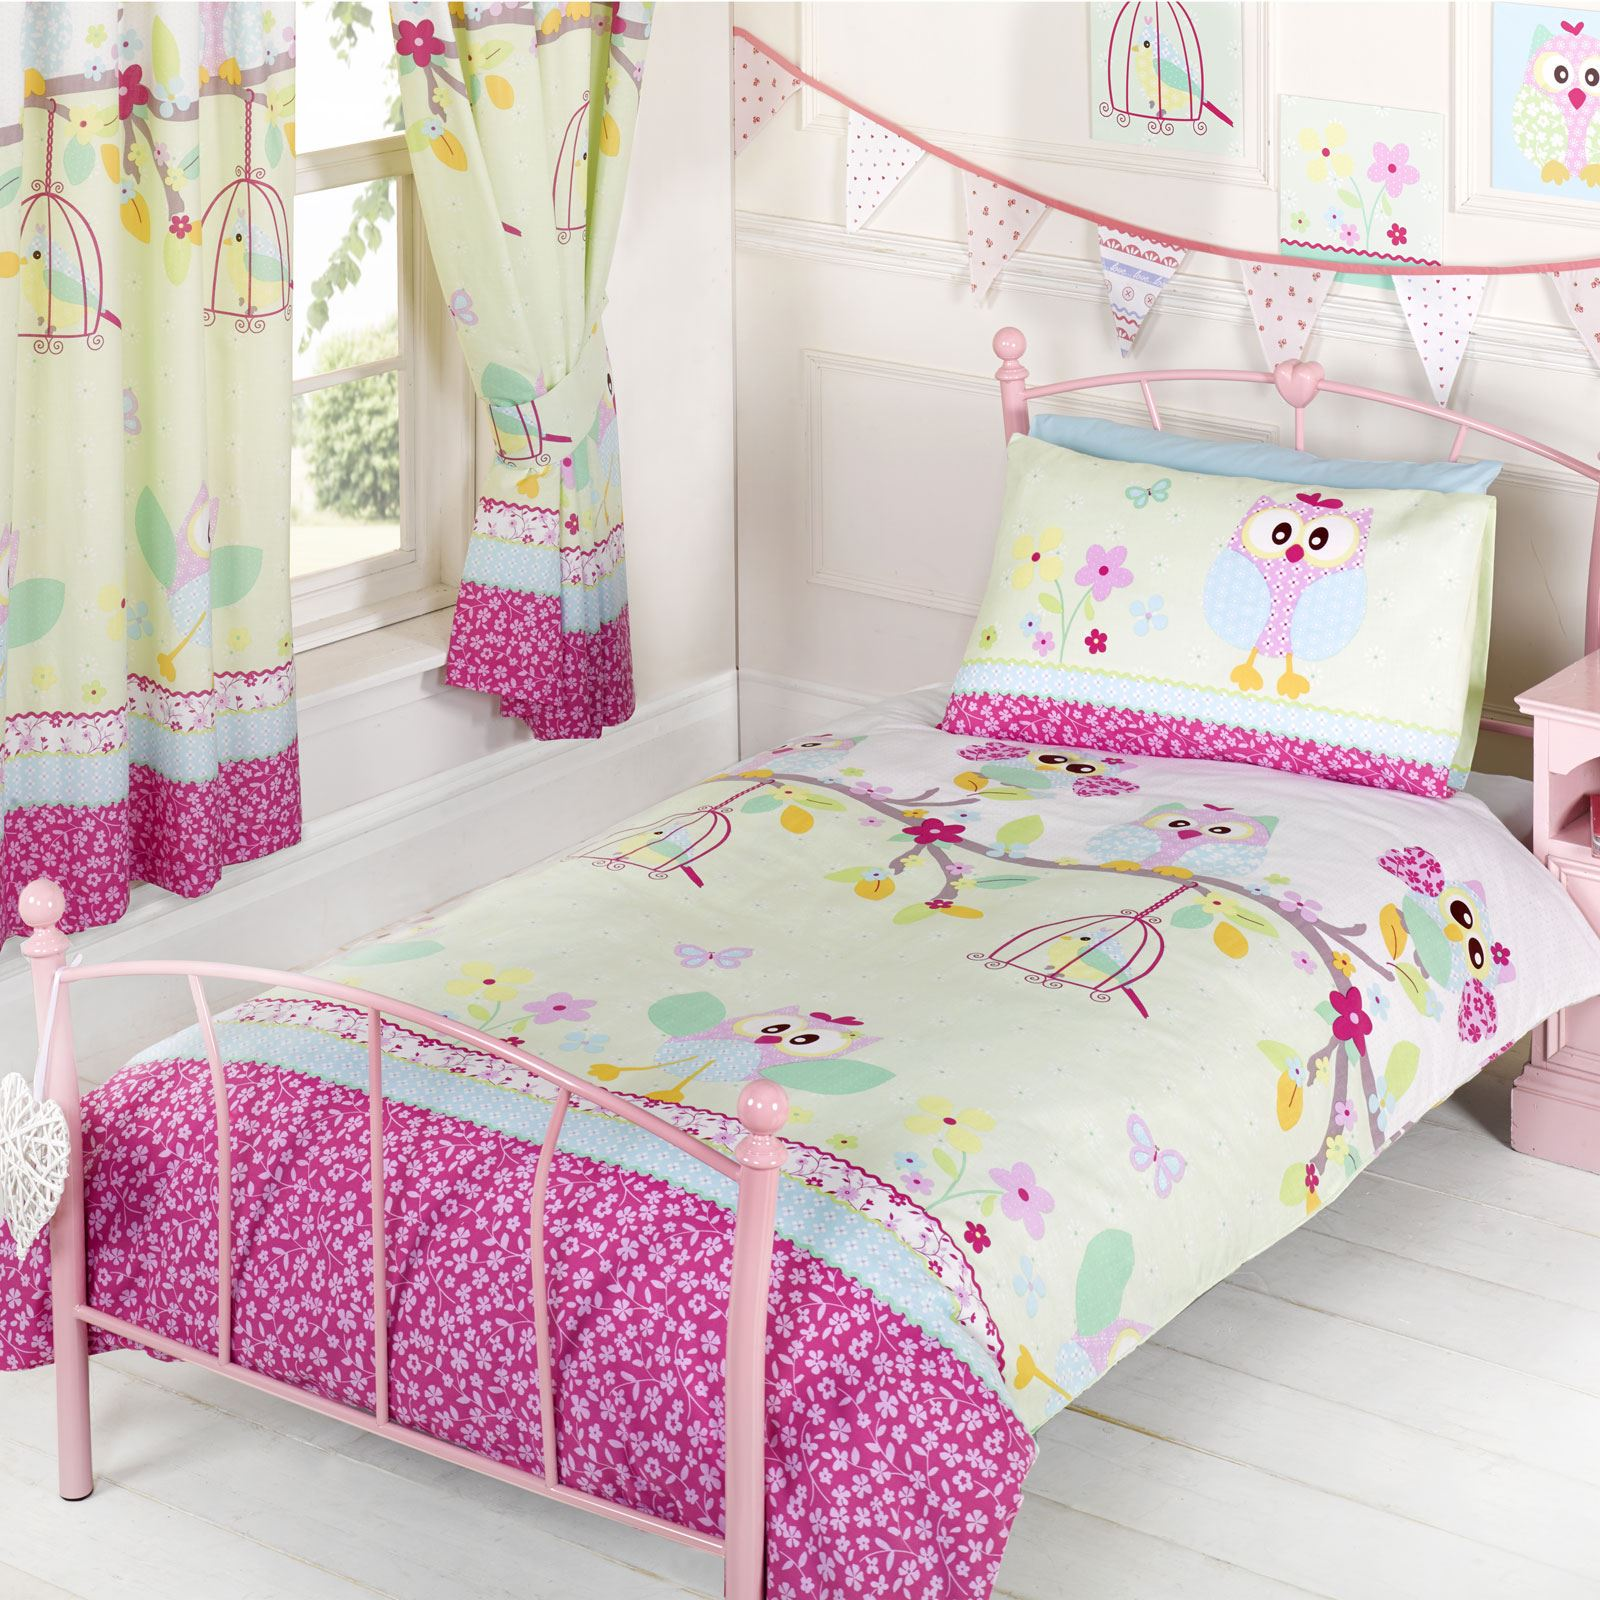 GIRLS DUVET COVERS BEDDING JUNIOR SINGLE DOUBLE UNICORN BIRDS